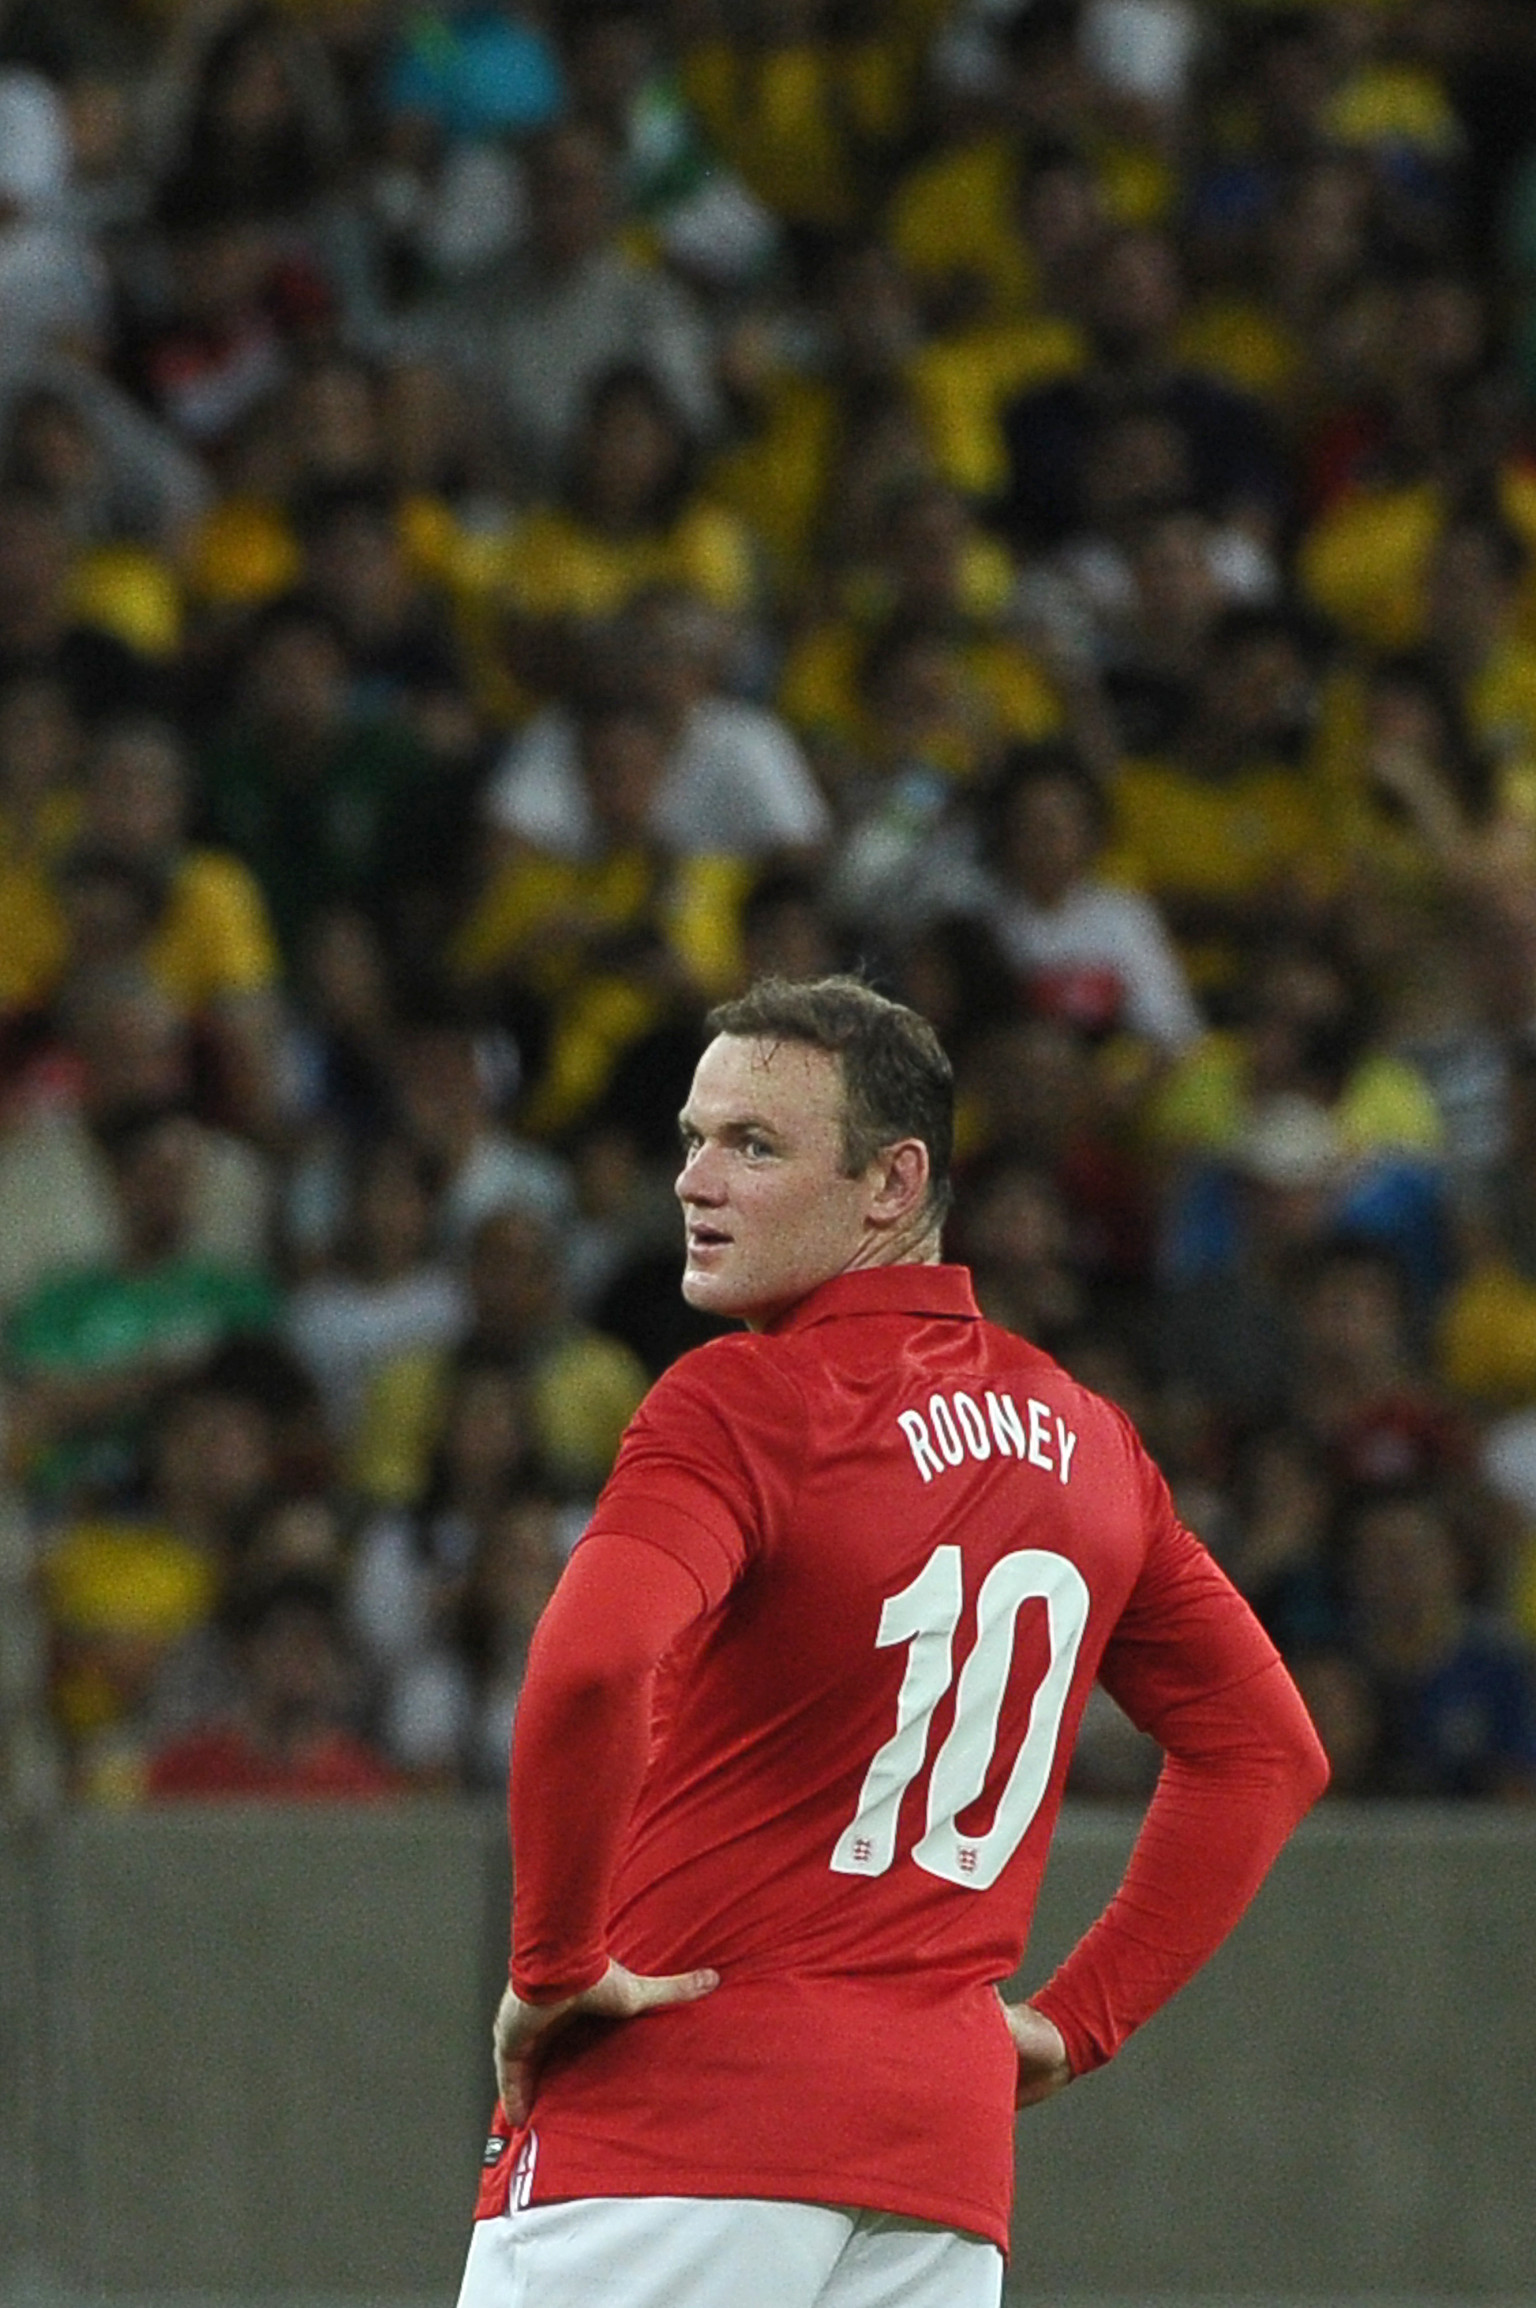 Wayne Rooney And Cristiano Ronaldo Fight O-wayne-rooney-facebook jpgWayne Rooney And Cristiano Ronaldo Fight